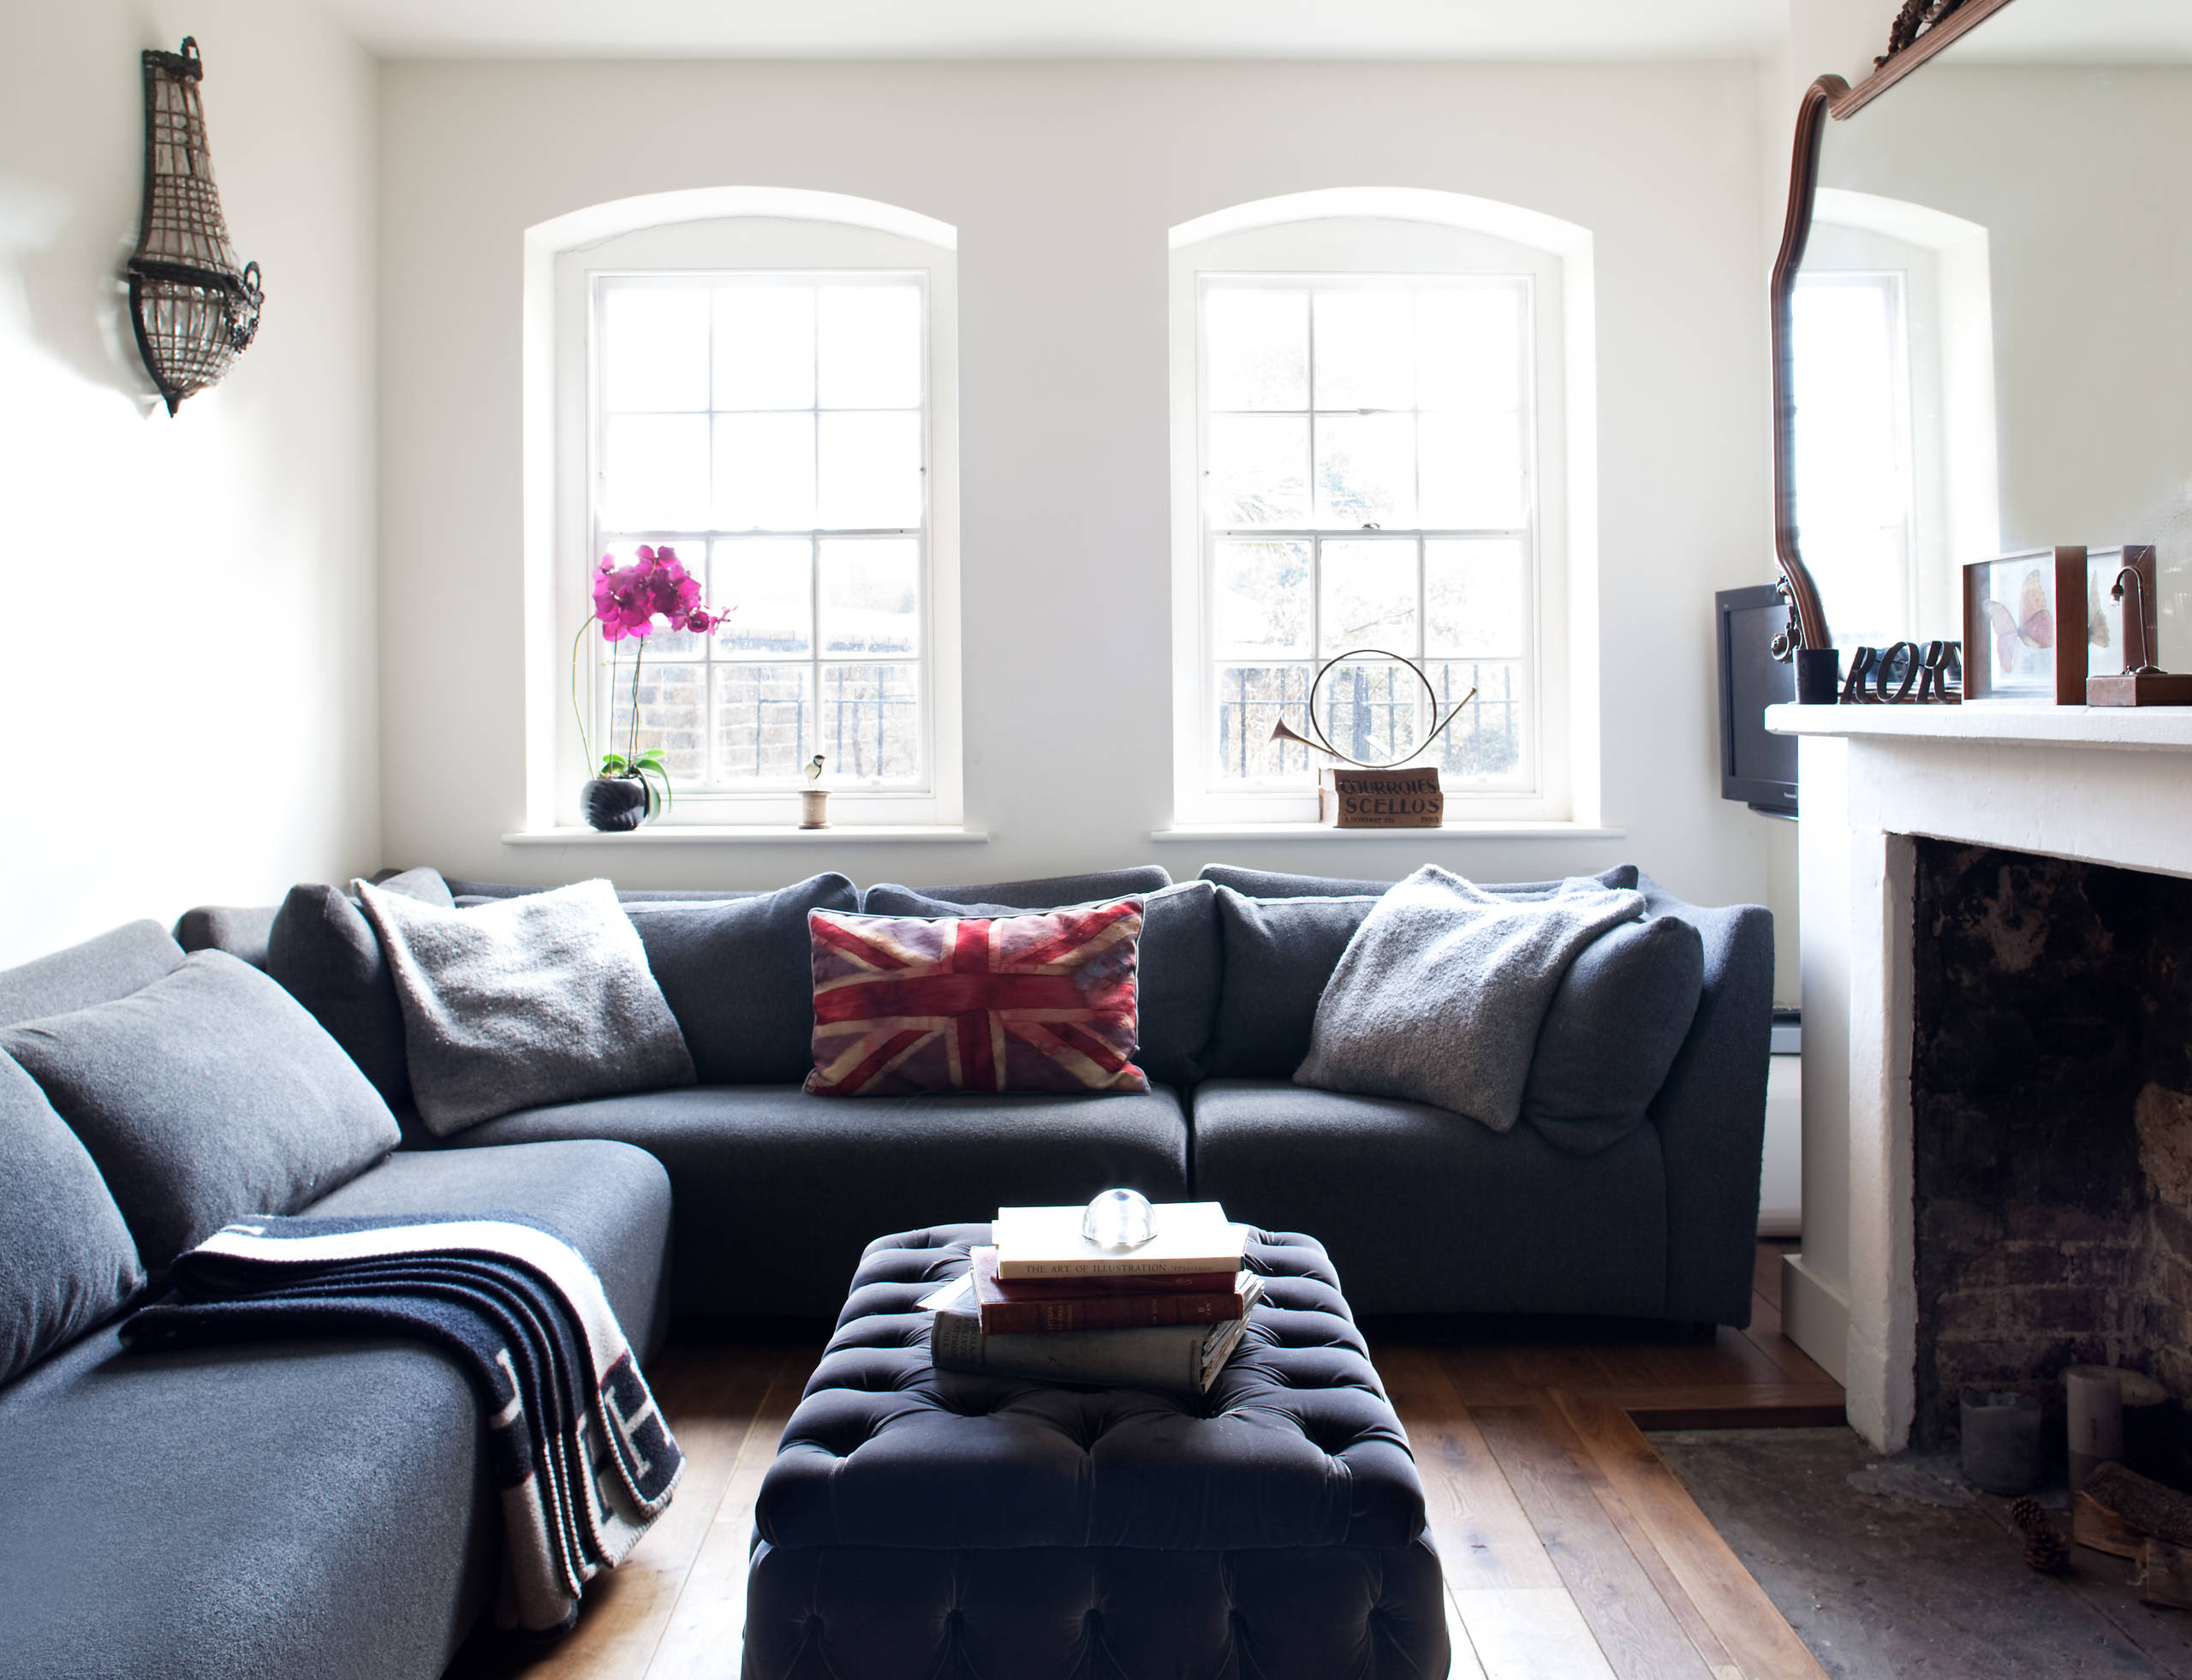 Think You Don't Have Room for a Big Sofa? | Houzz AU